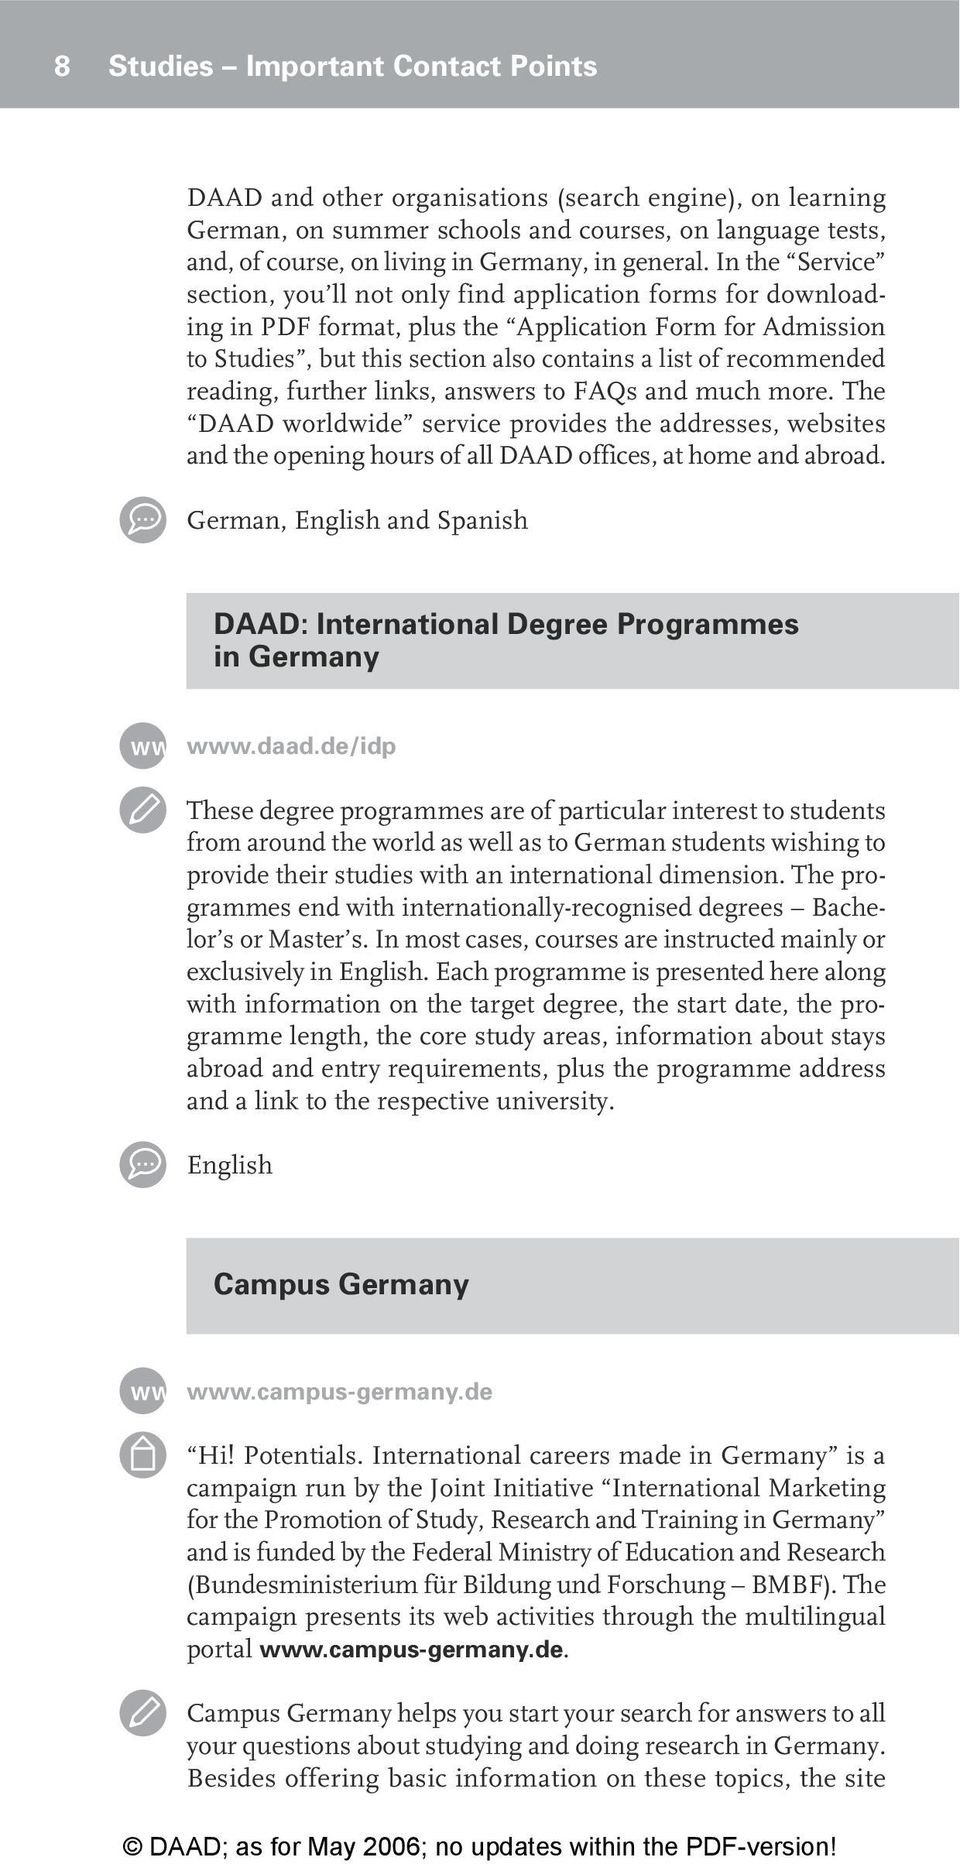 reading, further links, answers to FAQs and much more. The DAAD worldwide service provides the addresses, websites and the opening hours of all DAAD offices, at home and abroad.